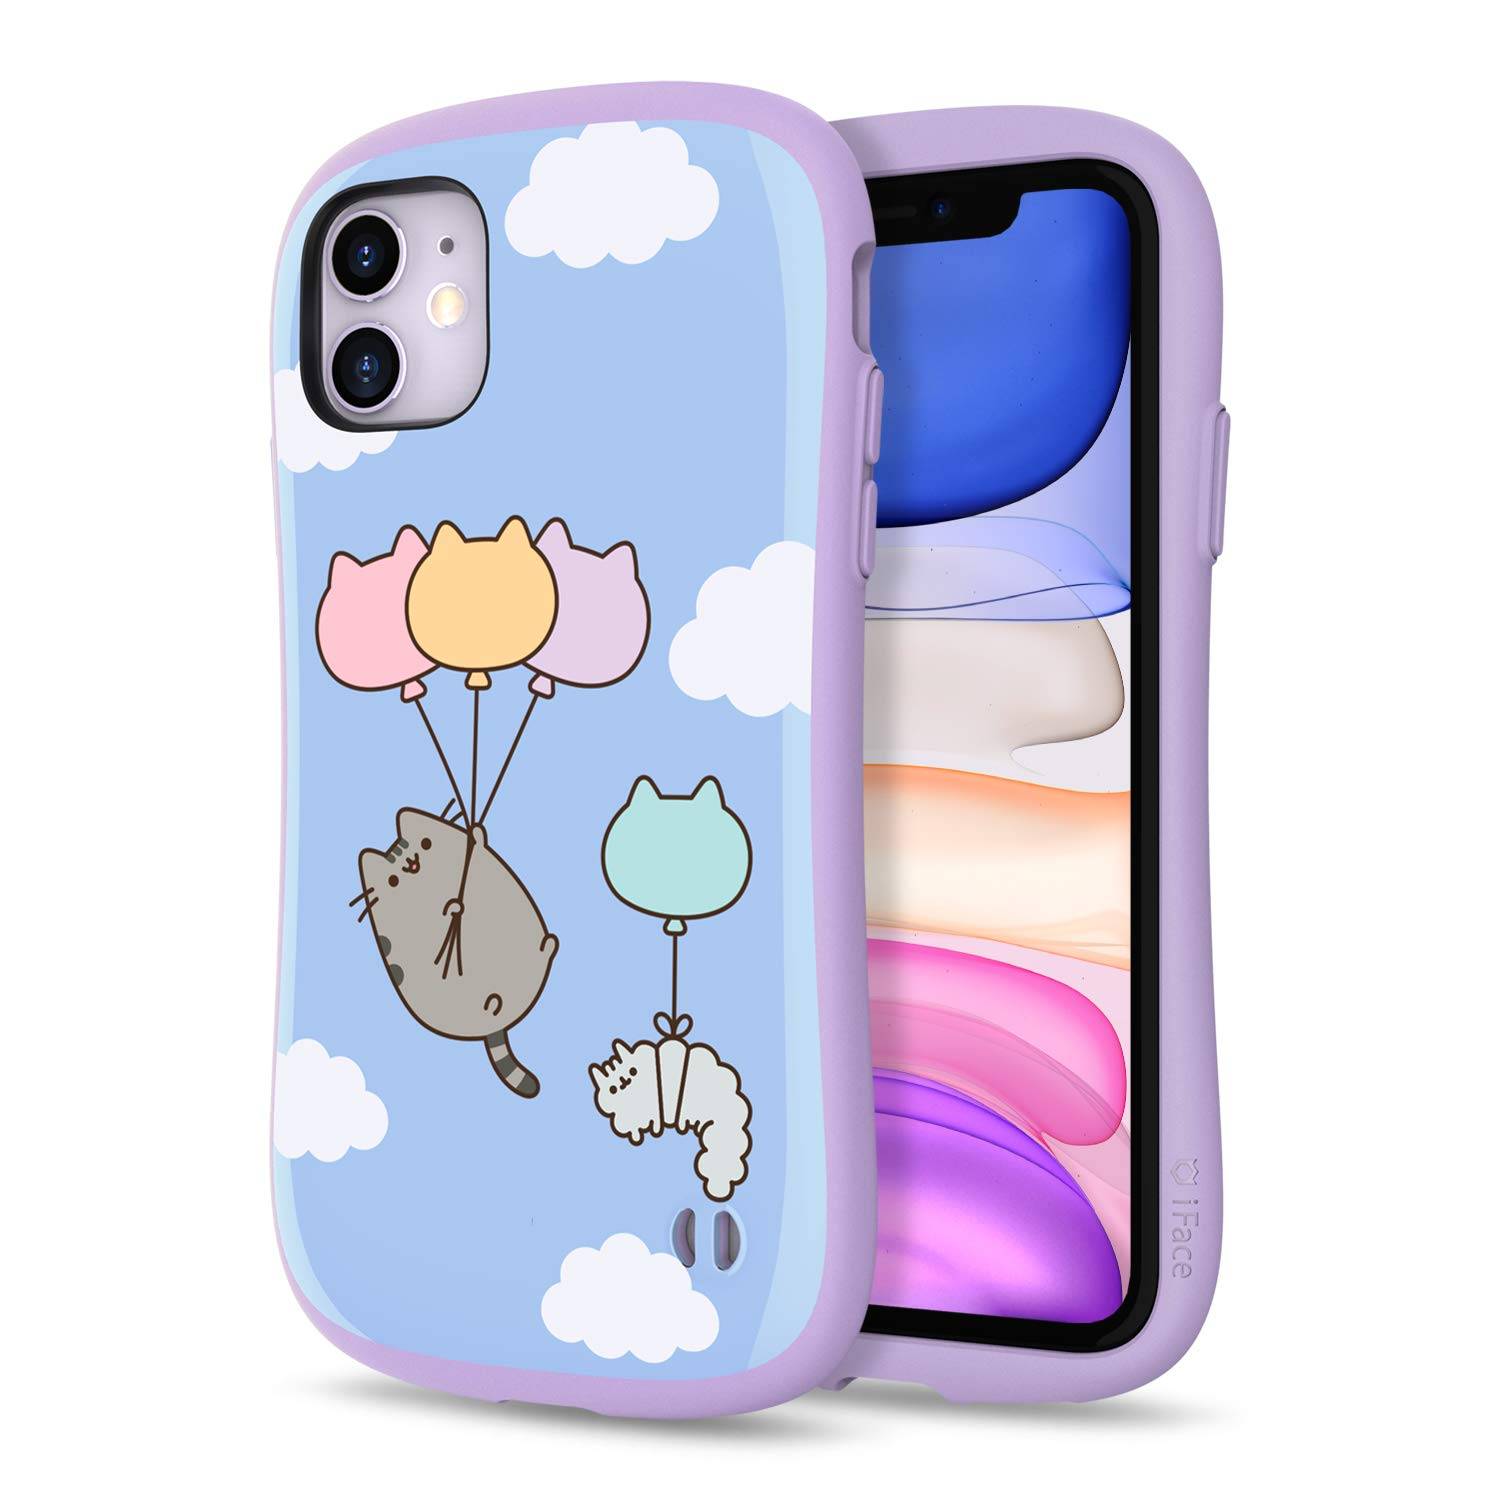 iFace x Pusheen The Cat First Class Series iPhone 11 Case – Cute Dual Layer [TPU and Polycarbonate] Hybrid Shockproof Protective Cover for Women [Drop Tested] - Blue Sky Balloon